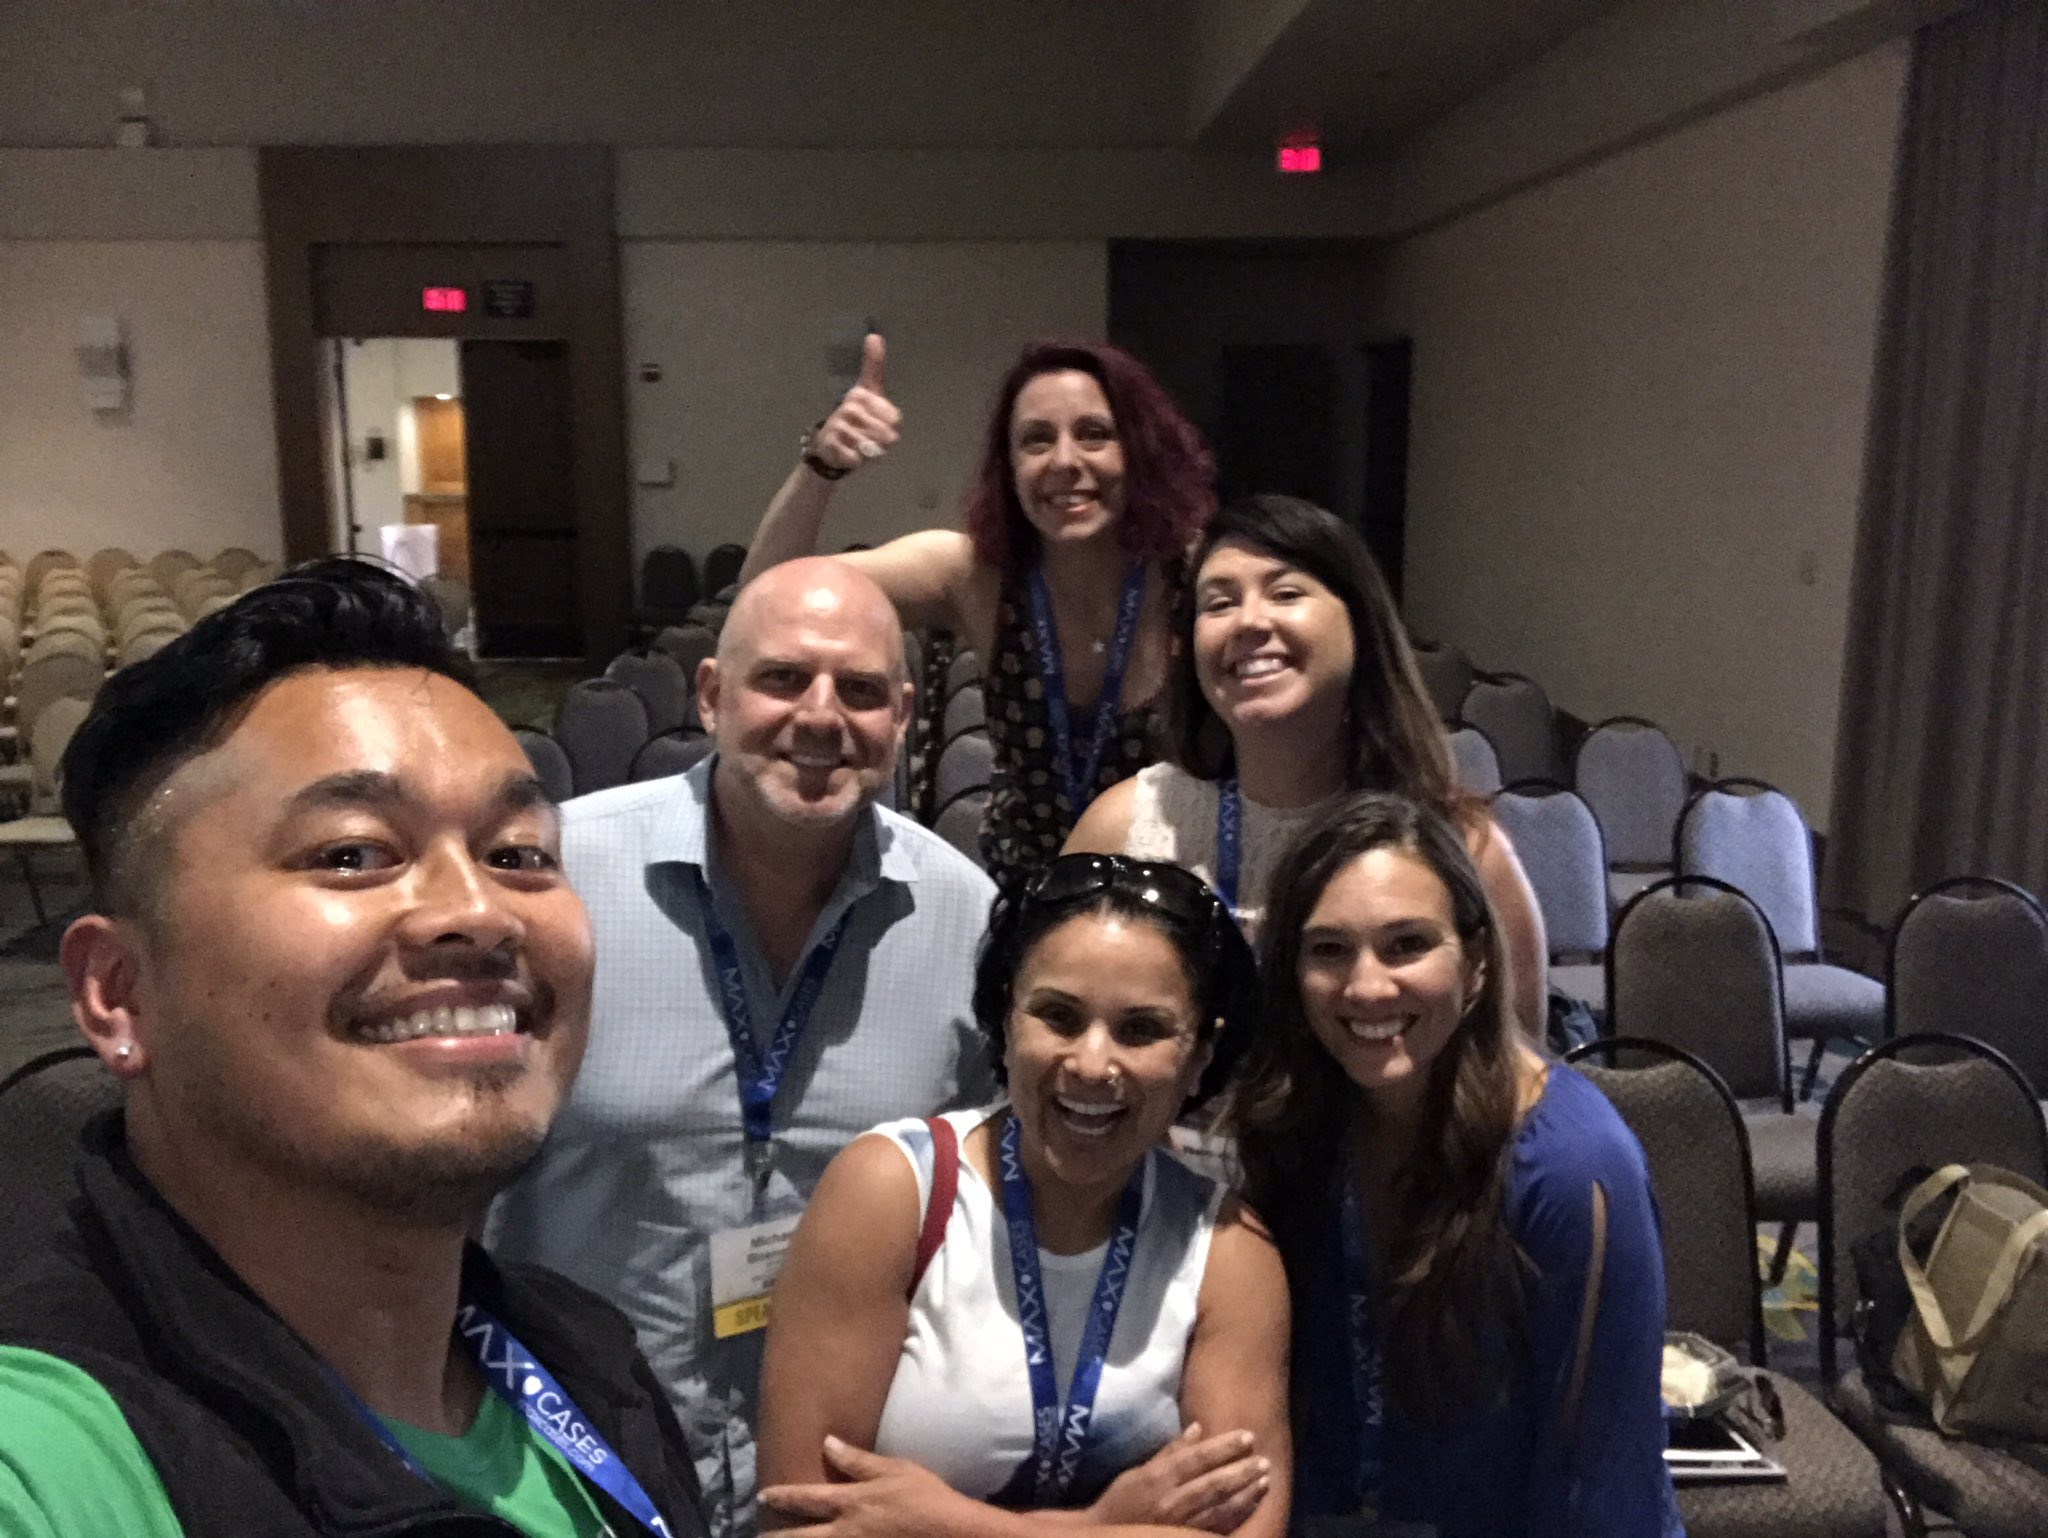 With a group like this, you can use #designthinking to achieve anything. #cue17 wrap up session for the day. @CUESanFrancisco supporting! https://t.co/0xKaLJ7gyx